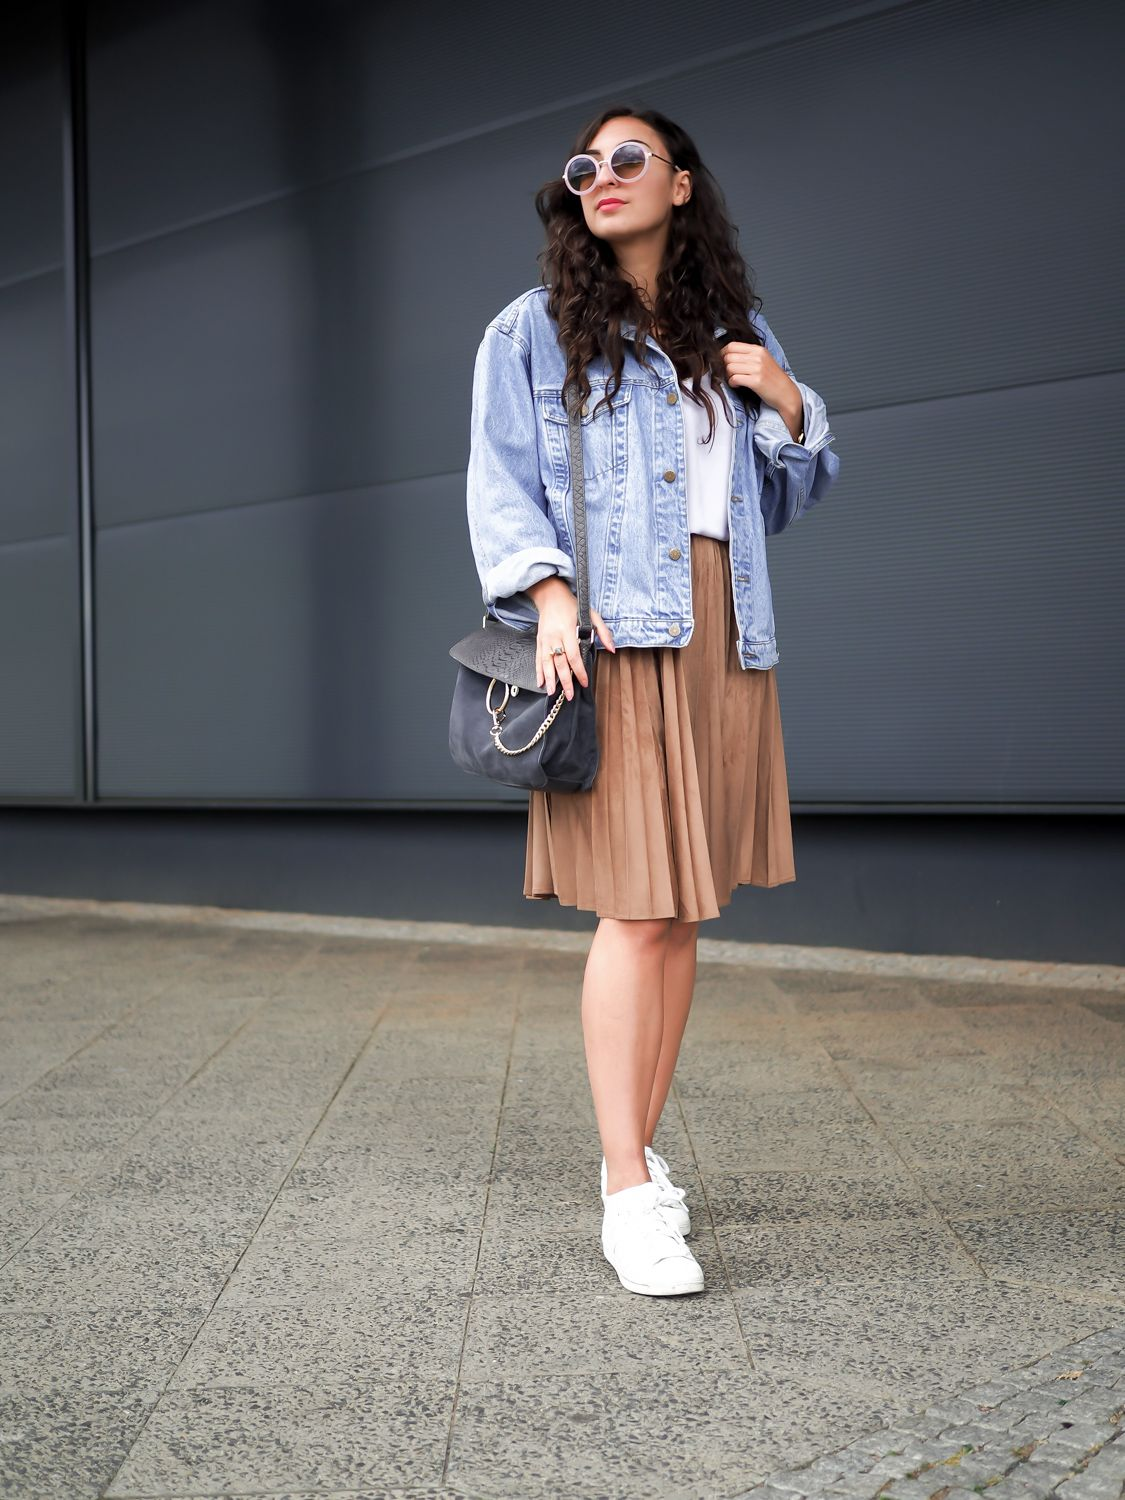 42d387a0a1 Oversize Denim Jacket and Pleated Skirt how to wear retro boyfriend  jeansjacke plissee rock midi länge midiskirt reserved sneakers adidas  superstars outfit ...